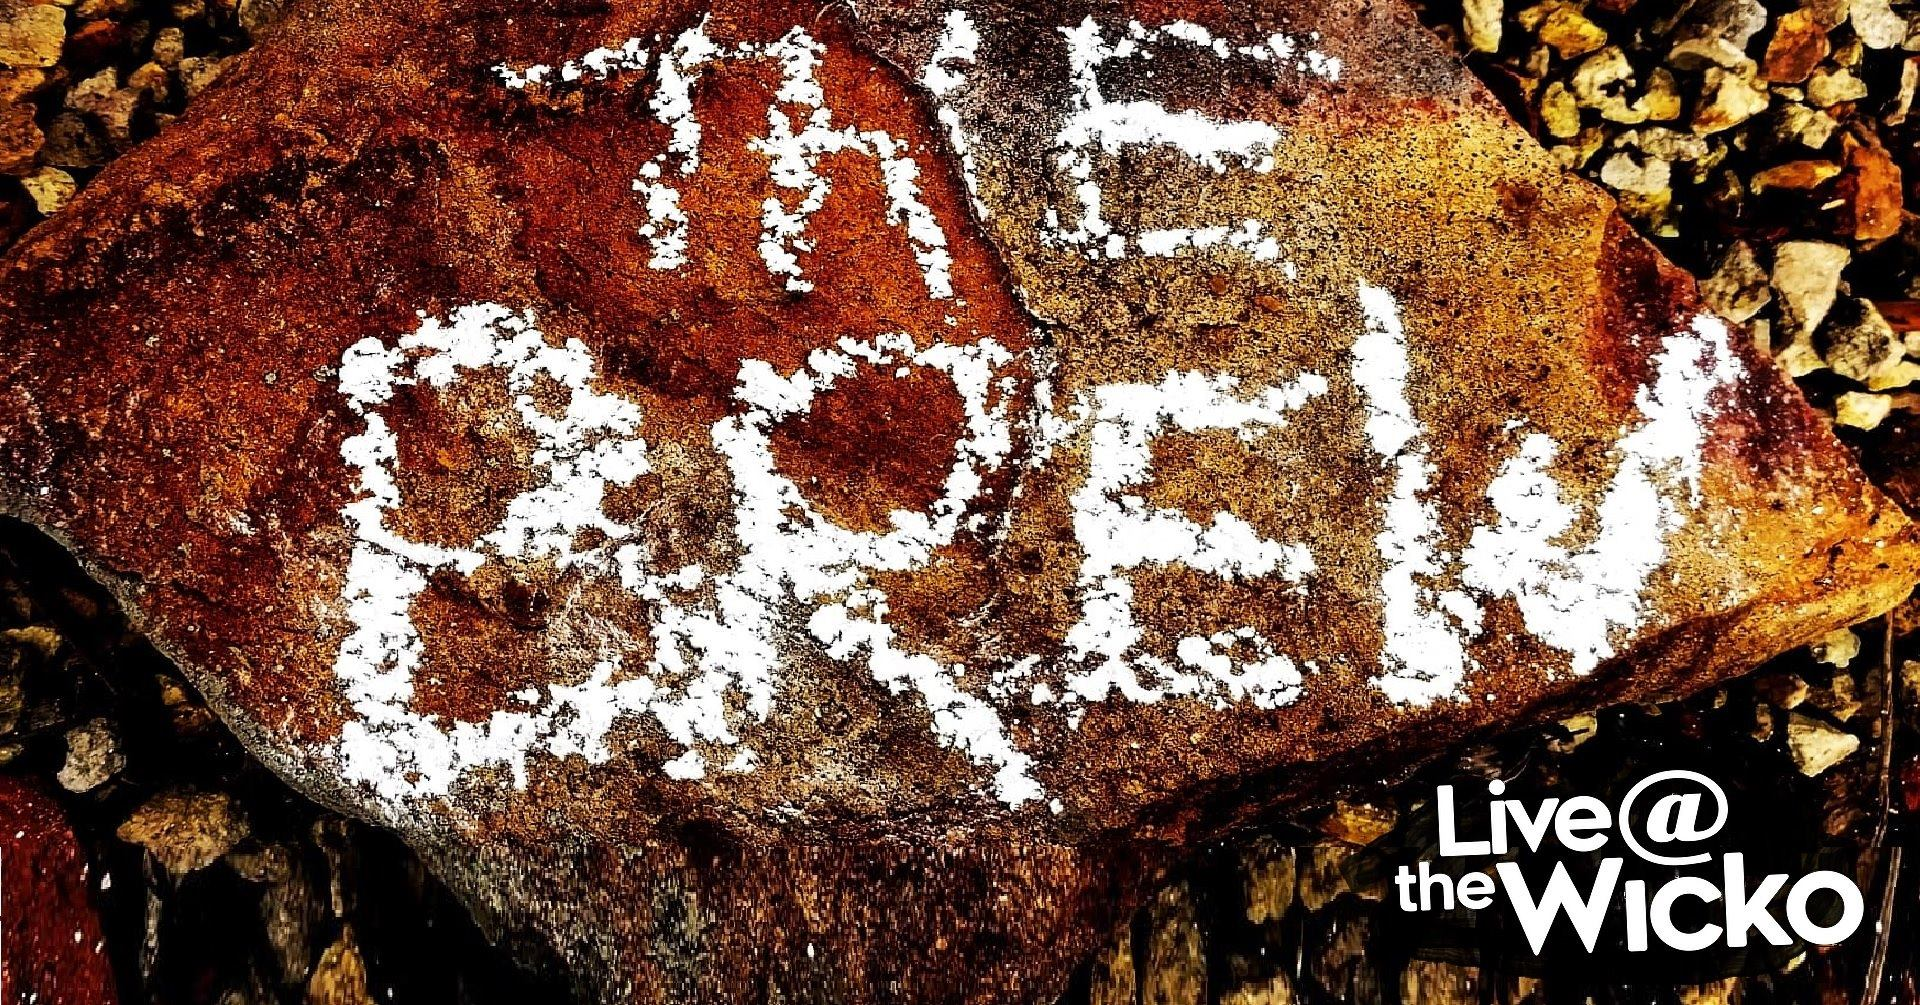 THE BREW – Live@TheWicko